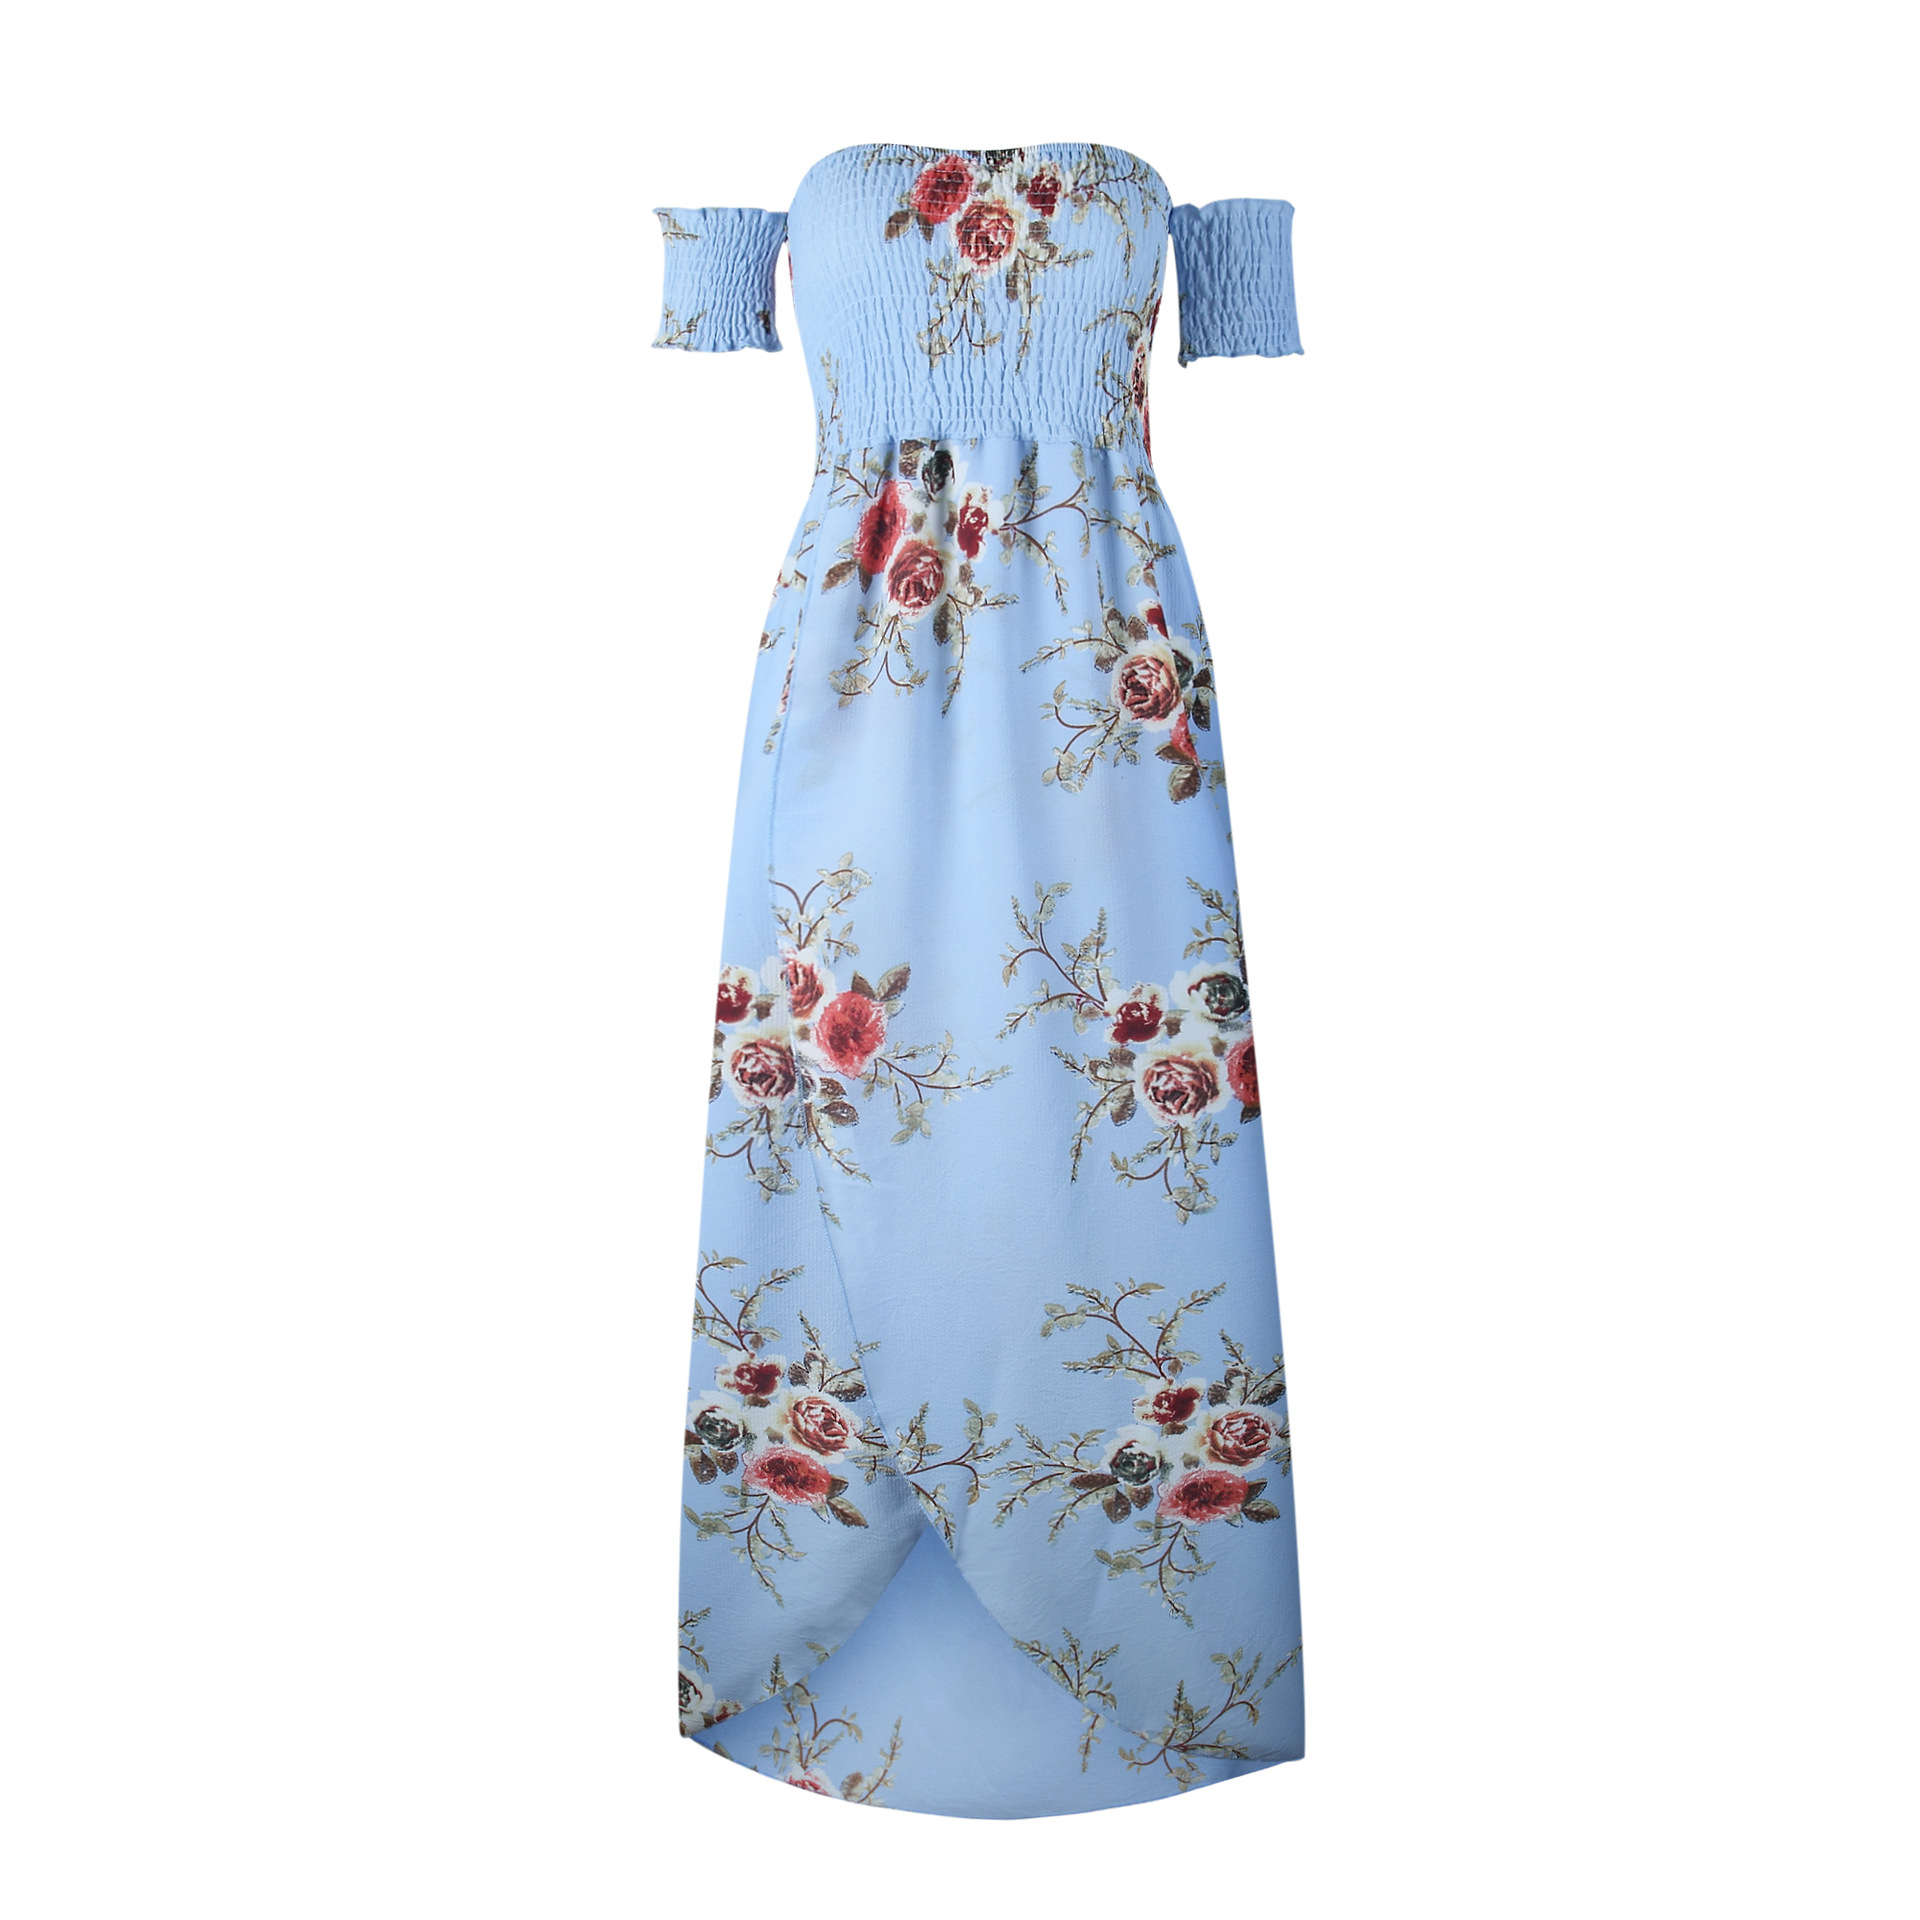 6816e6ab0e6b Boho Beach Dress Summer Women Off Shoulder High Low Chiffon Floral Print  Maxi SunDress Light Blue on Luulla